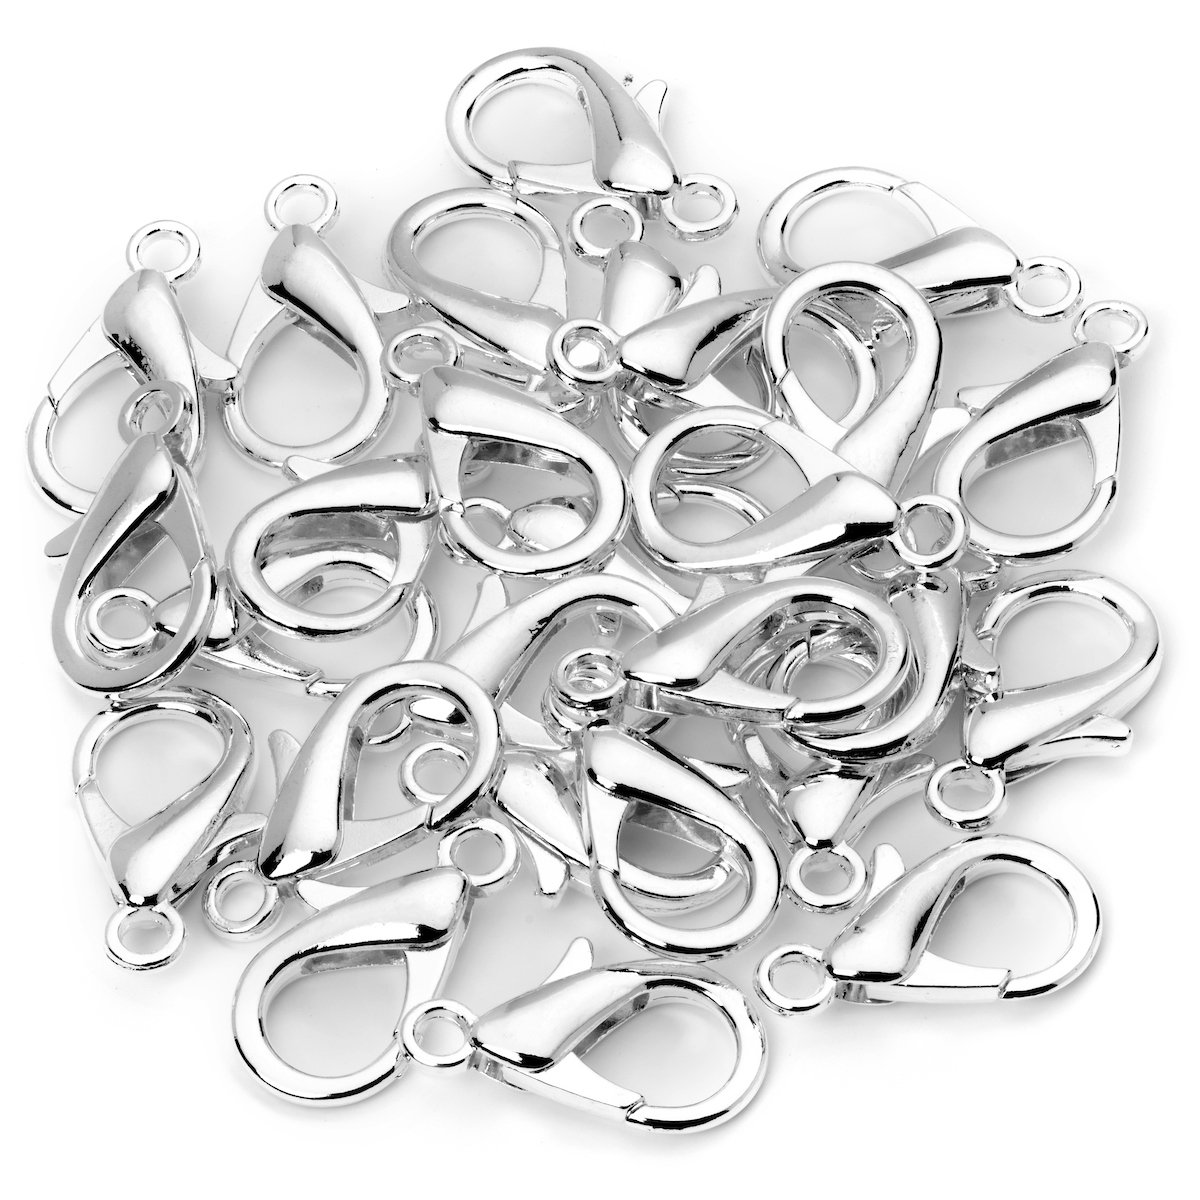 14x7 100 Lobster Clasps Gold Plated Lobster Claw clasps Jewelry Making Findings Lead /& Nickel Free